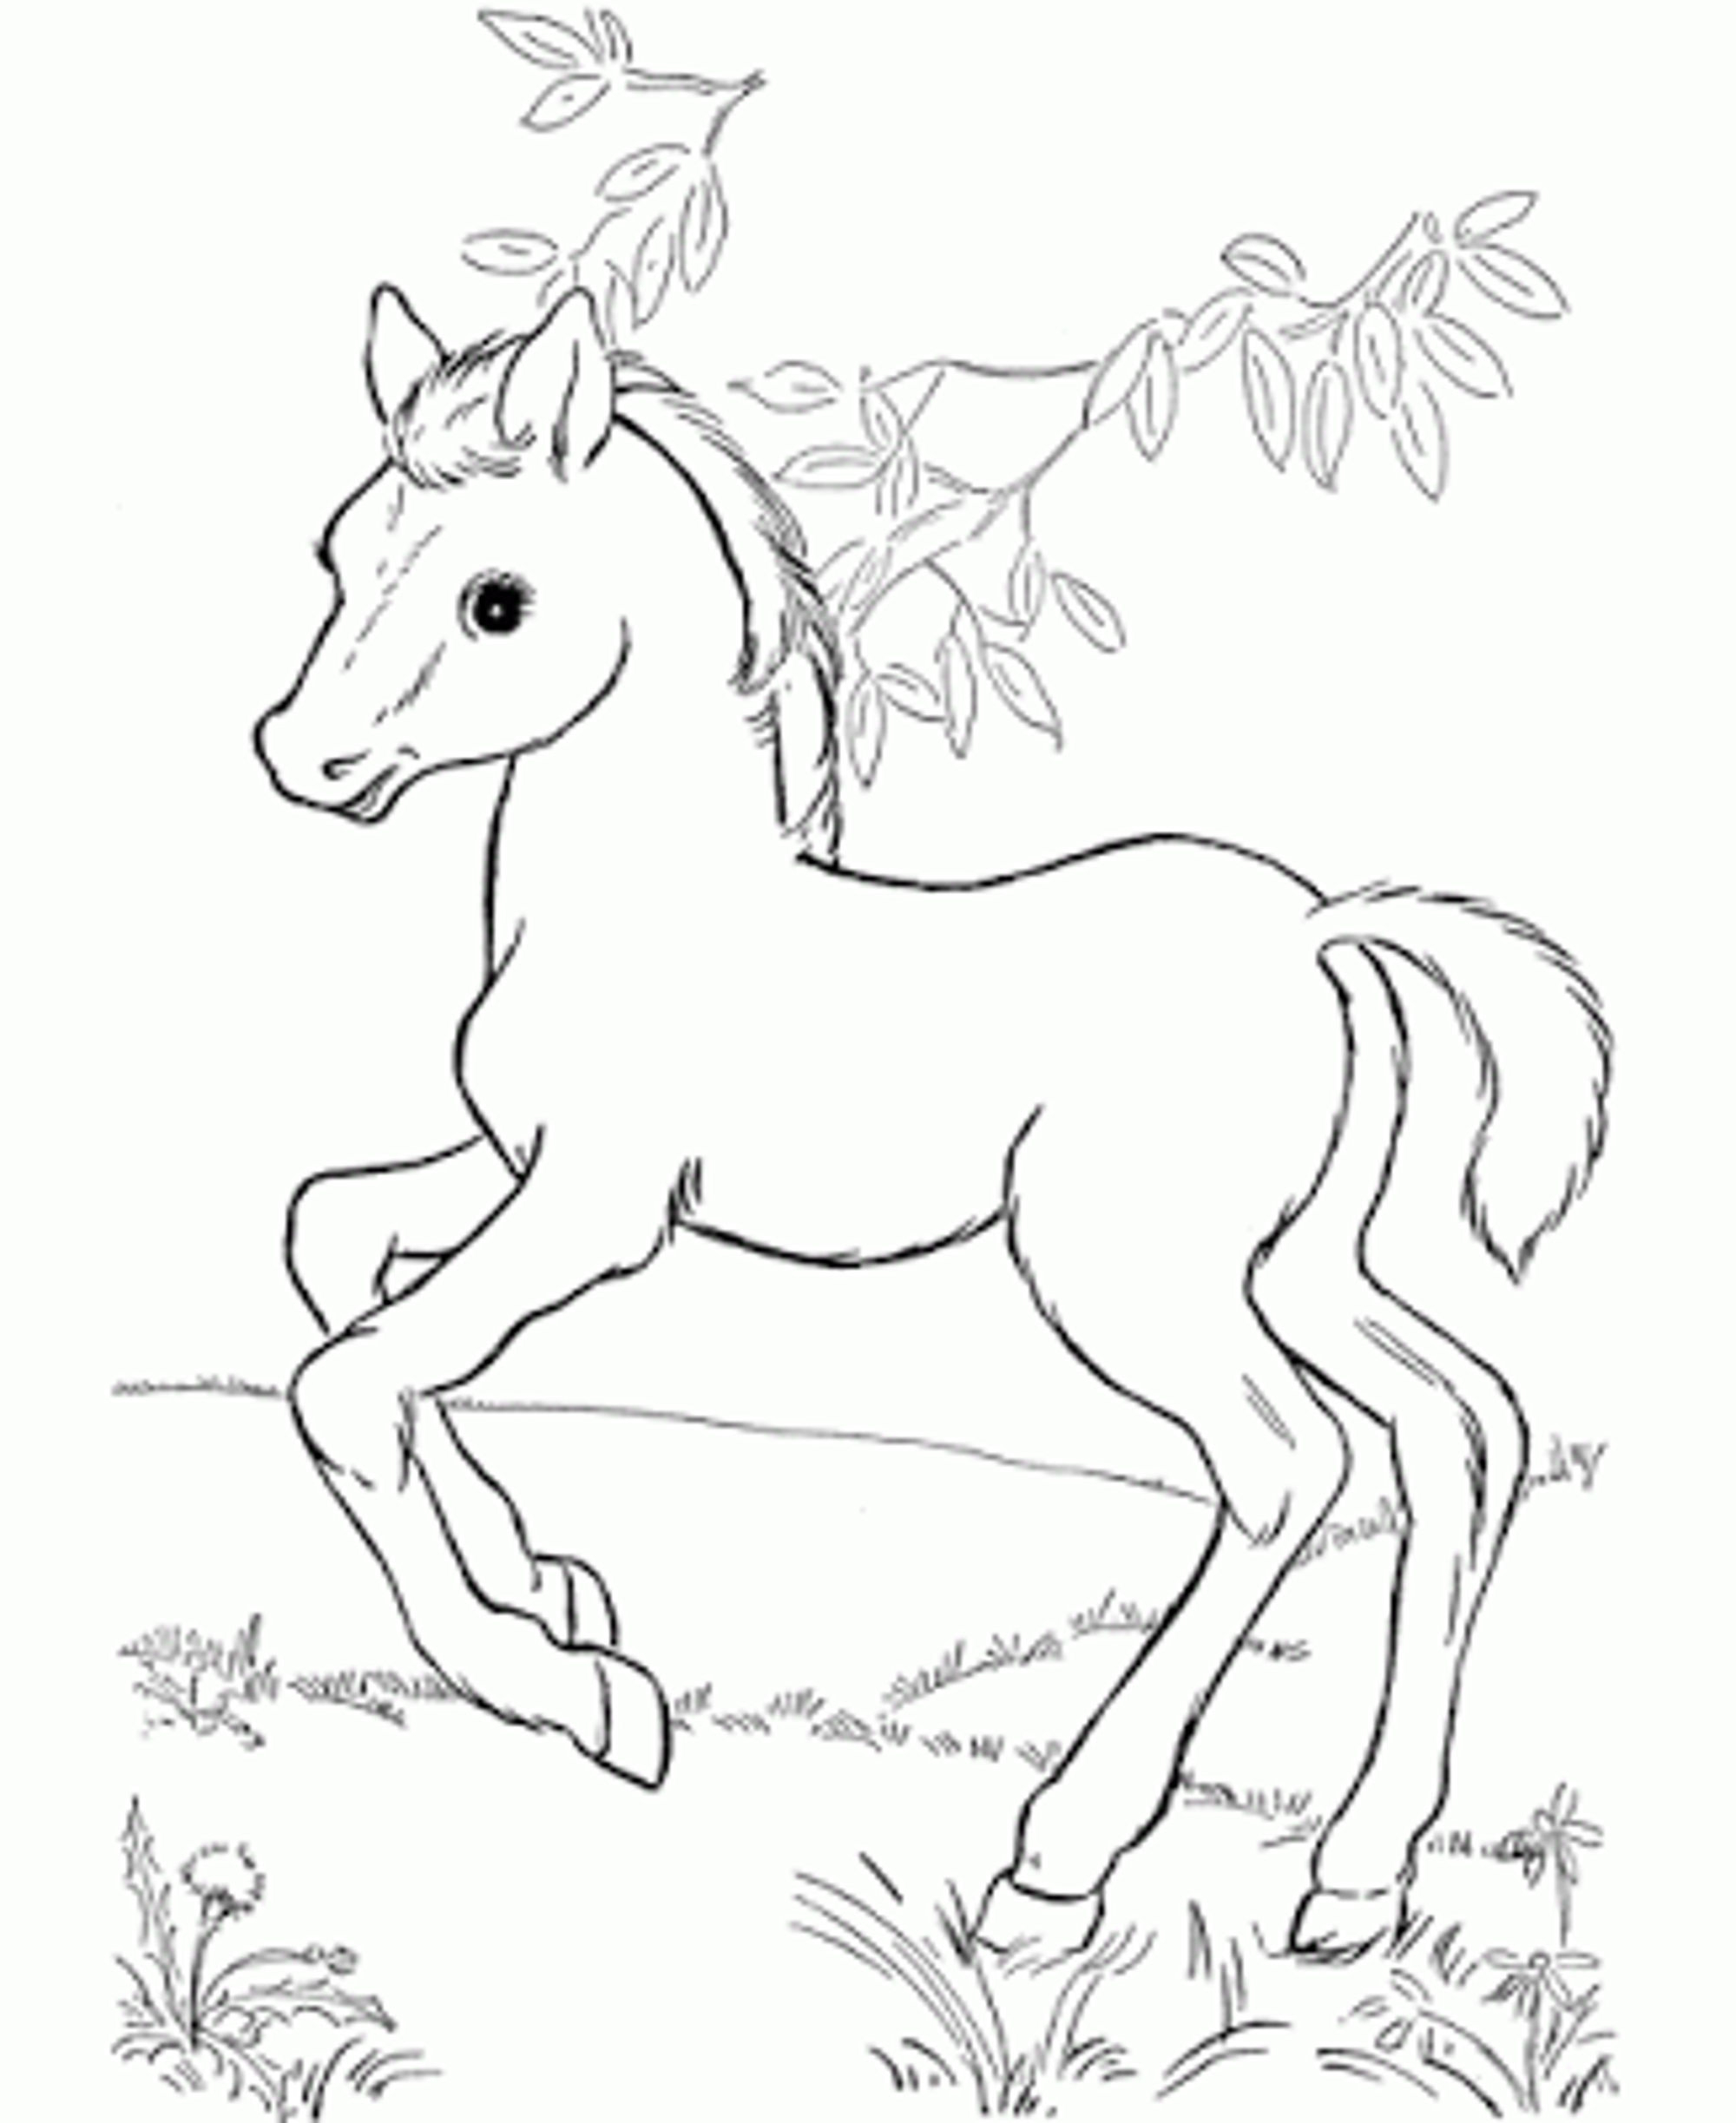 Baby Horses Coloring Pages Horse and Foal Page Free Printable to Print Of Horse Detailed Coloring Pages Gallery